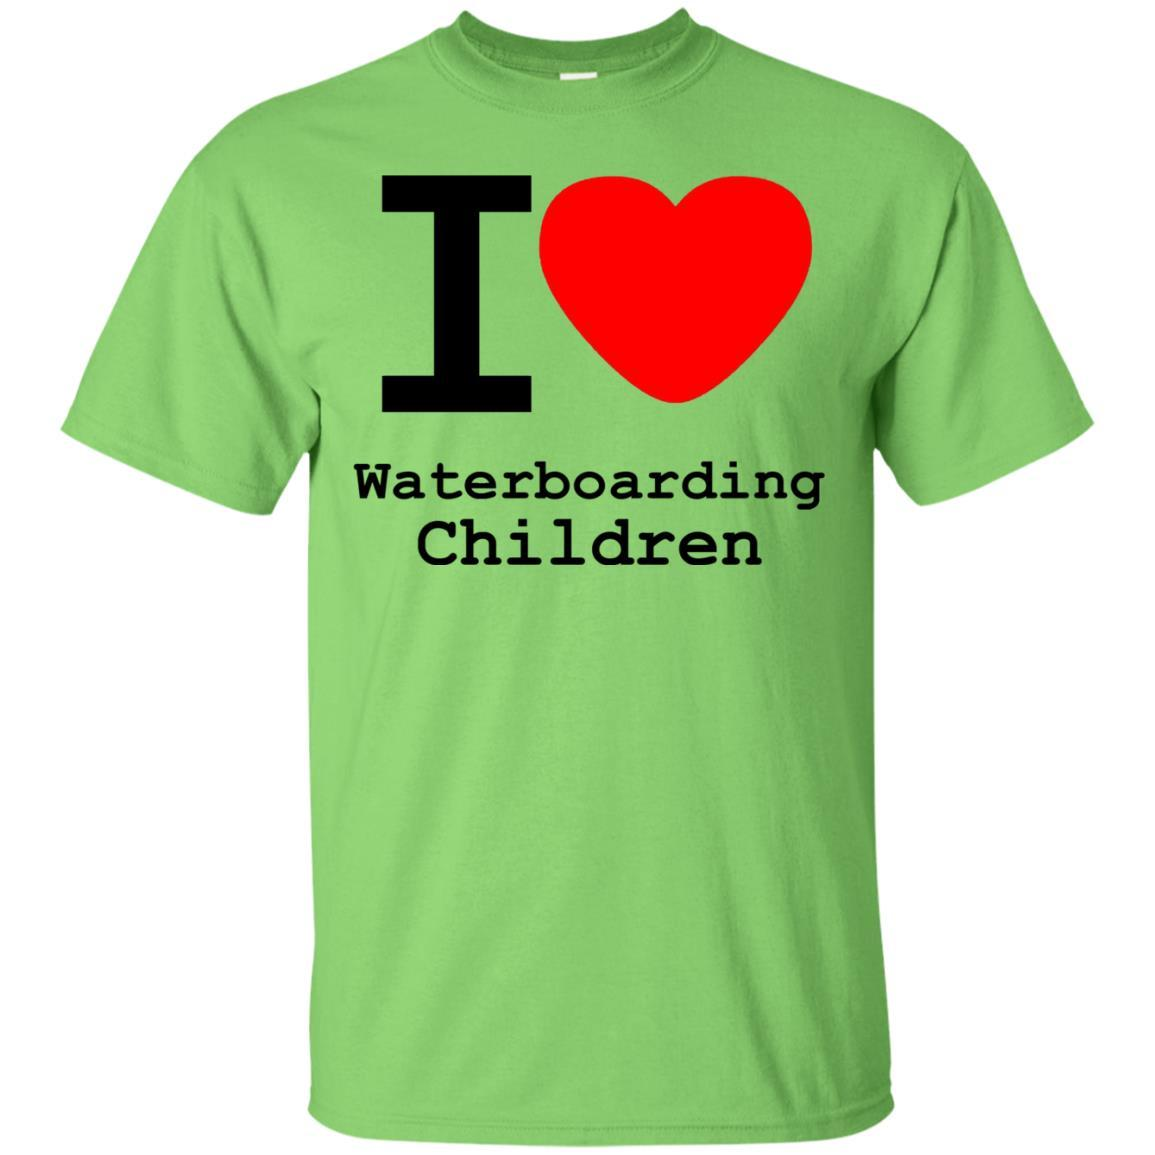 I love Waterboarding Children T-Shirt Lime / 5XL